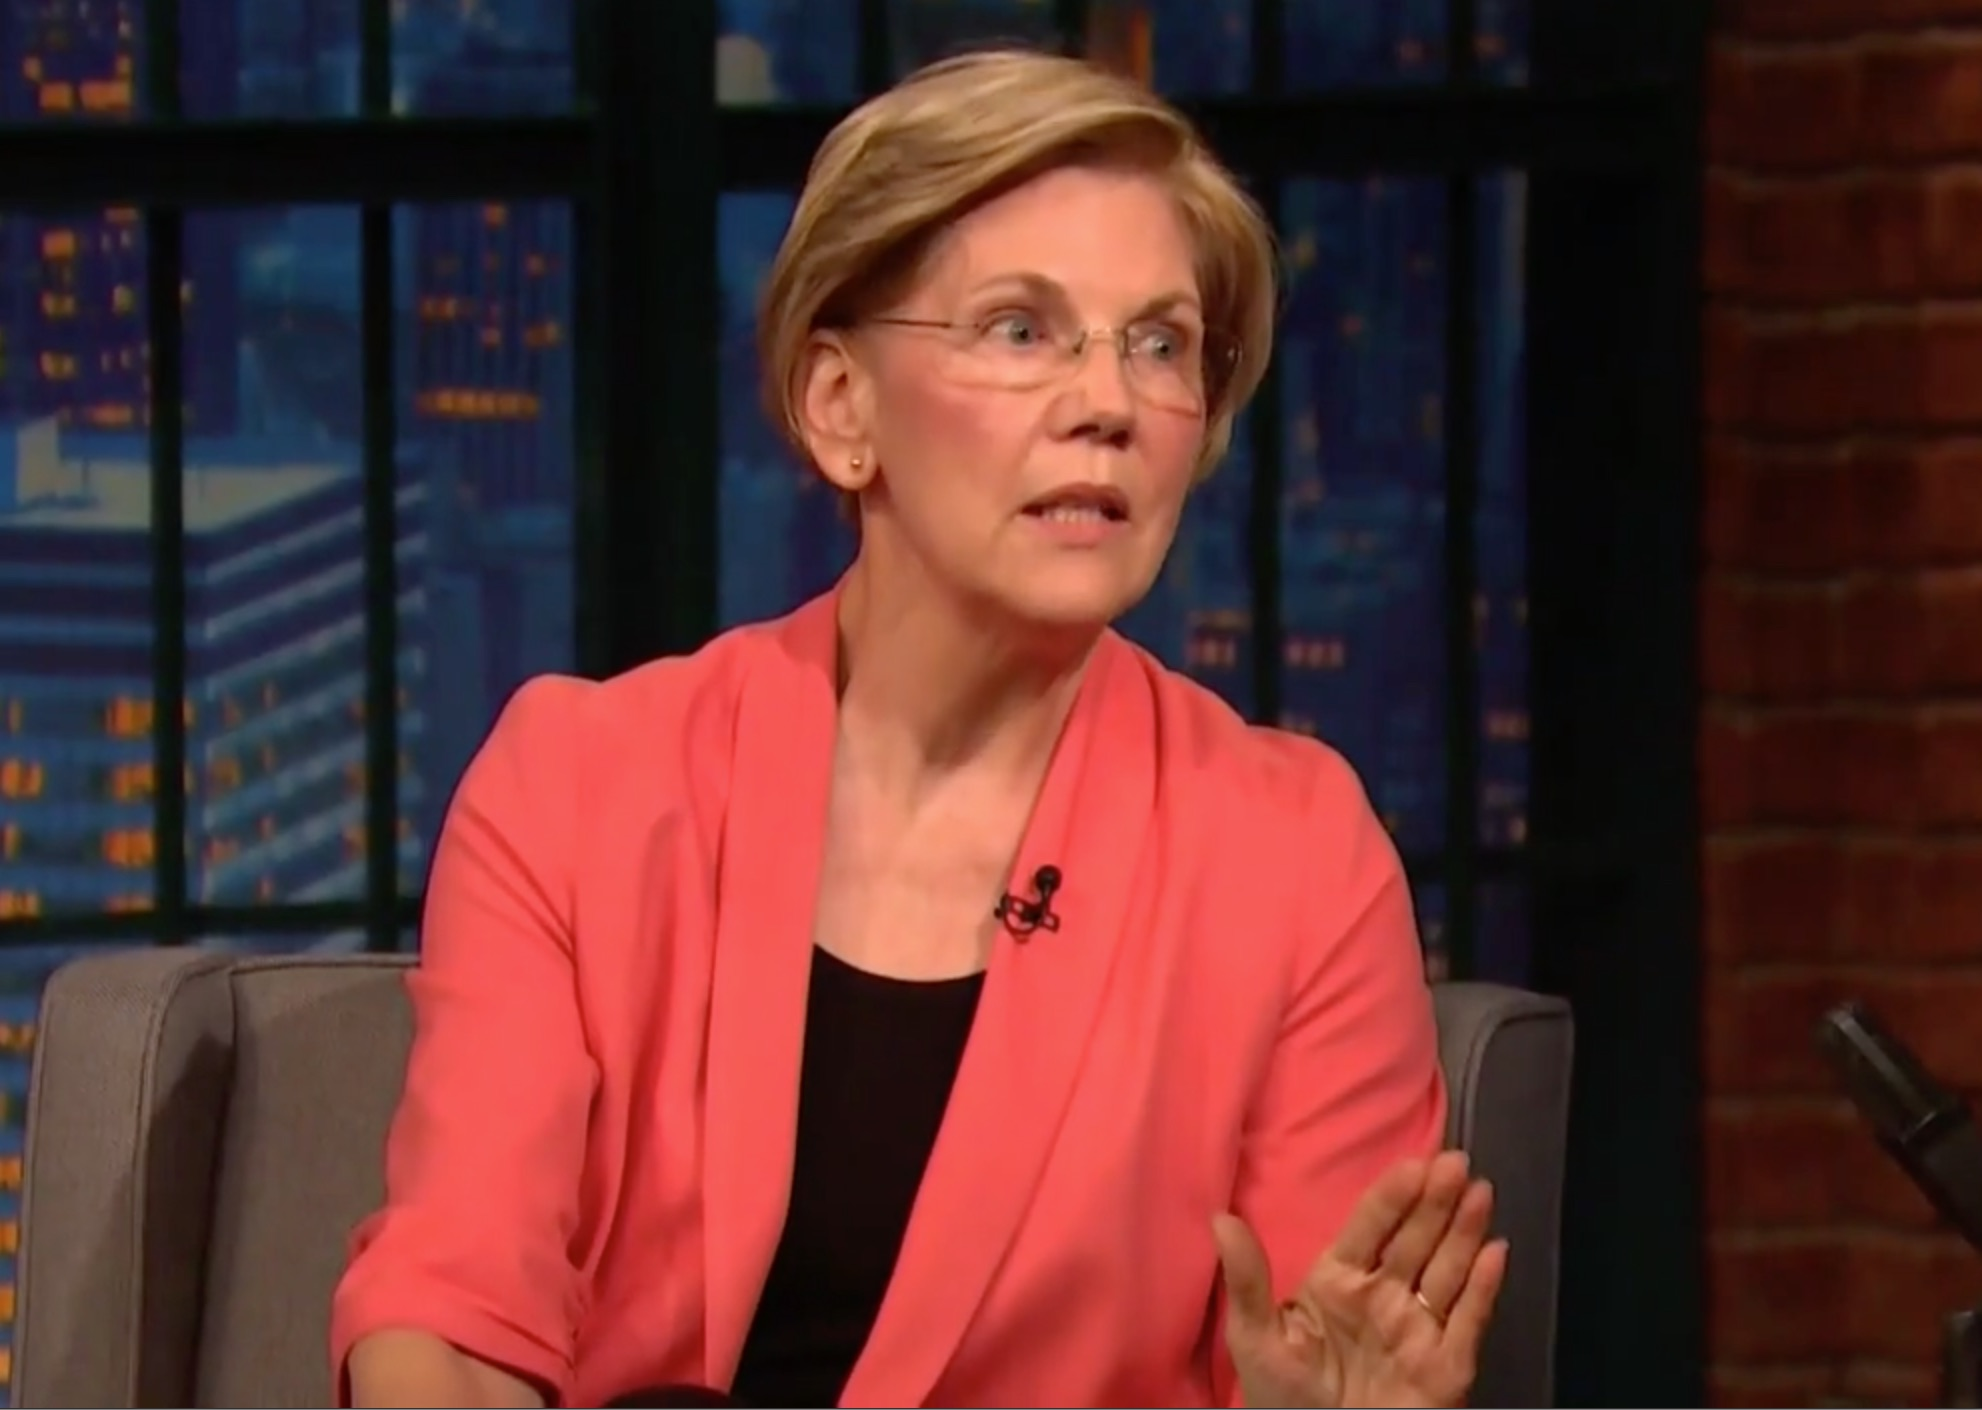 Elizabeth Warren Reveals DNA Evidence of Native American Ancestry, Rebuking Trump